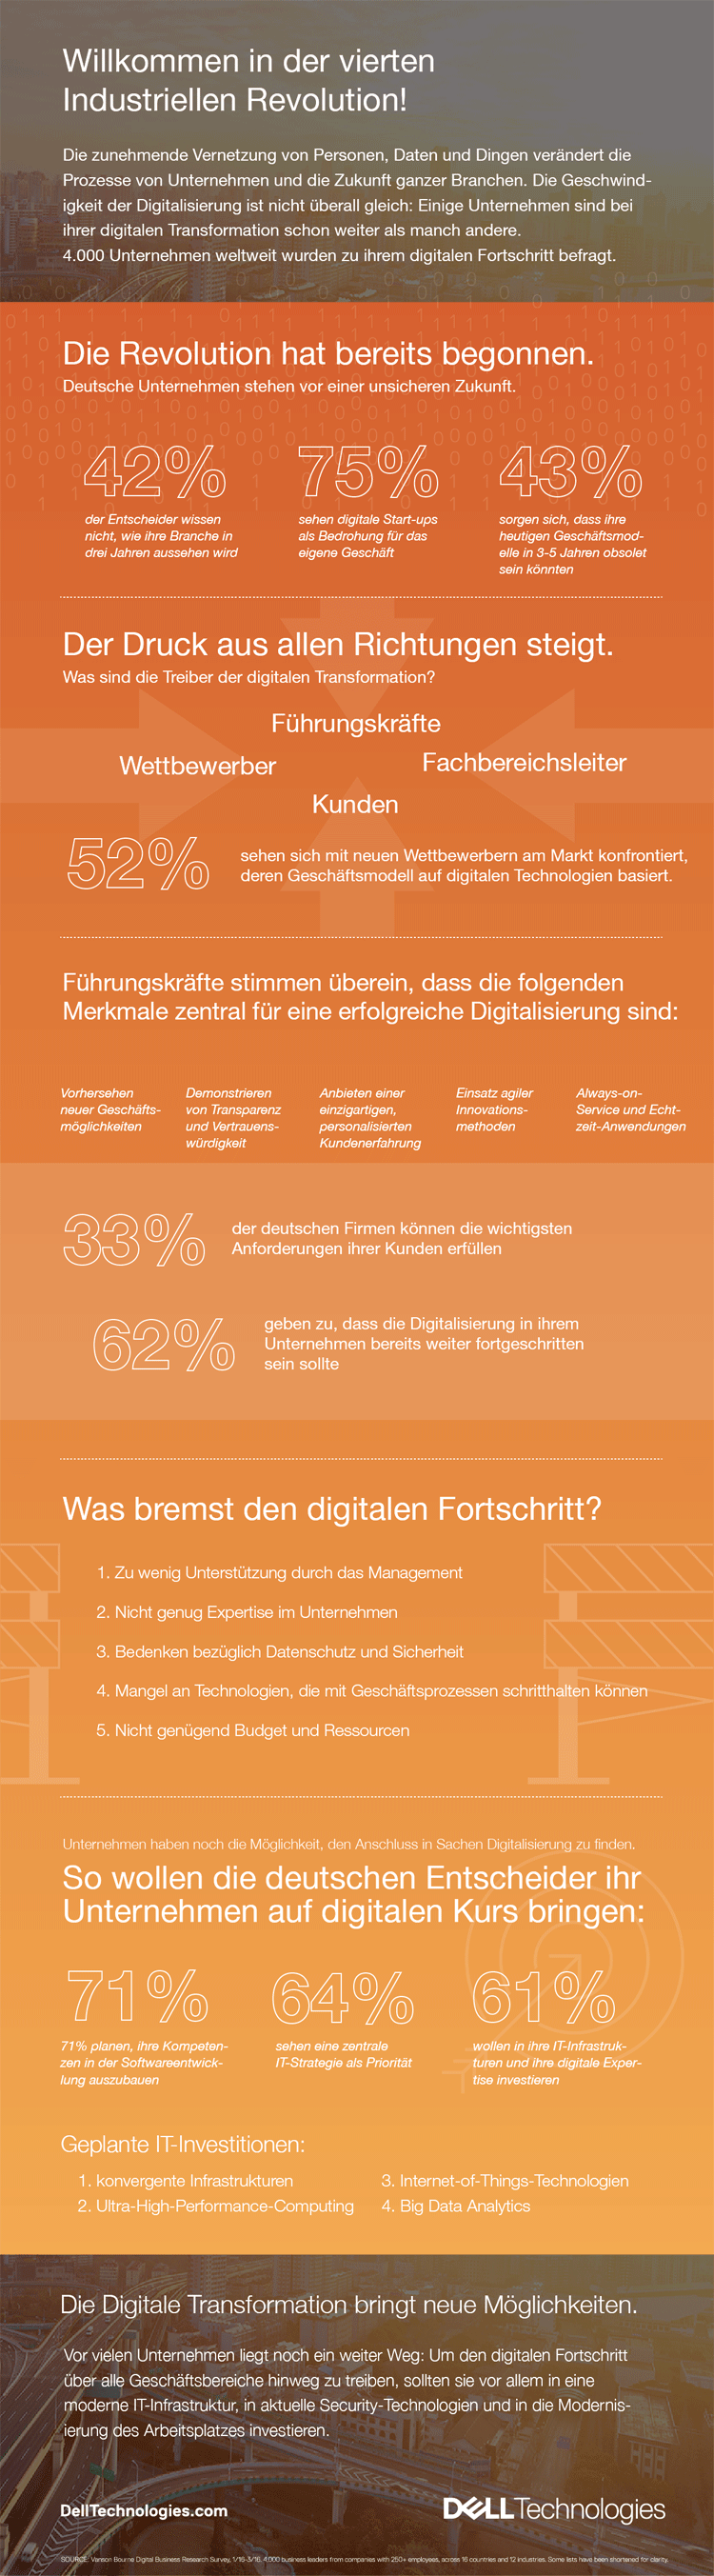 Infografik zur digitalen Transformation in Deutschland